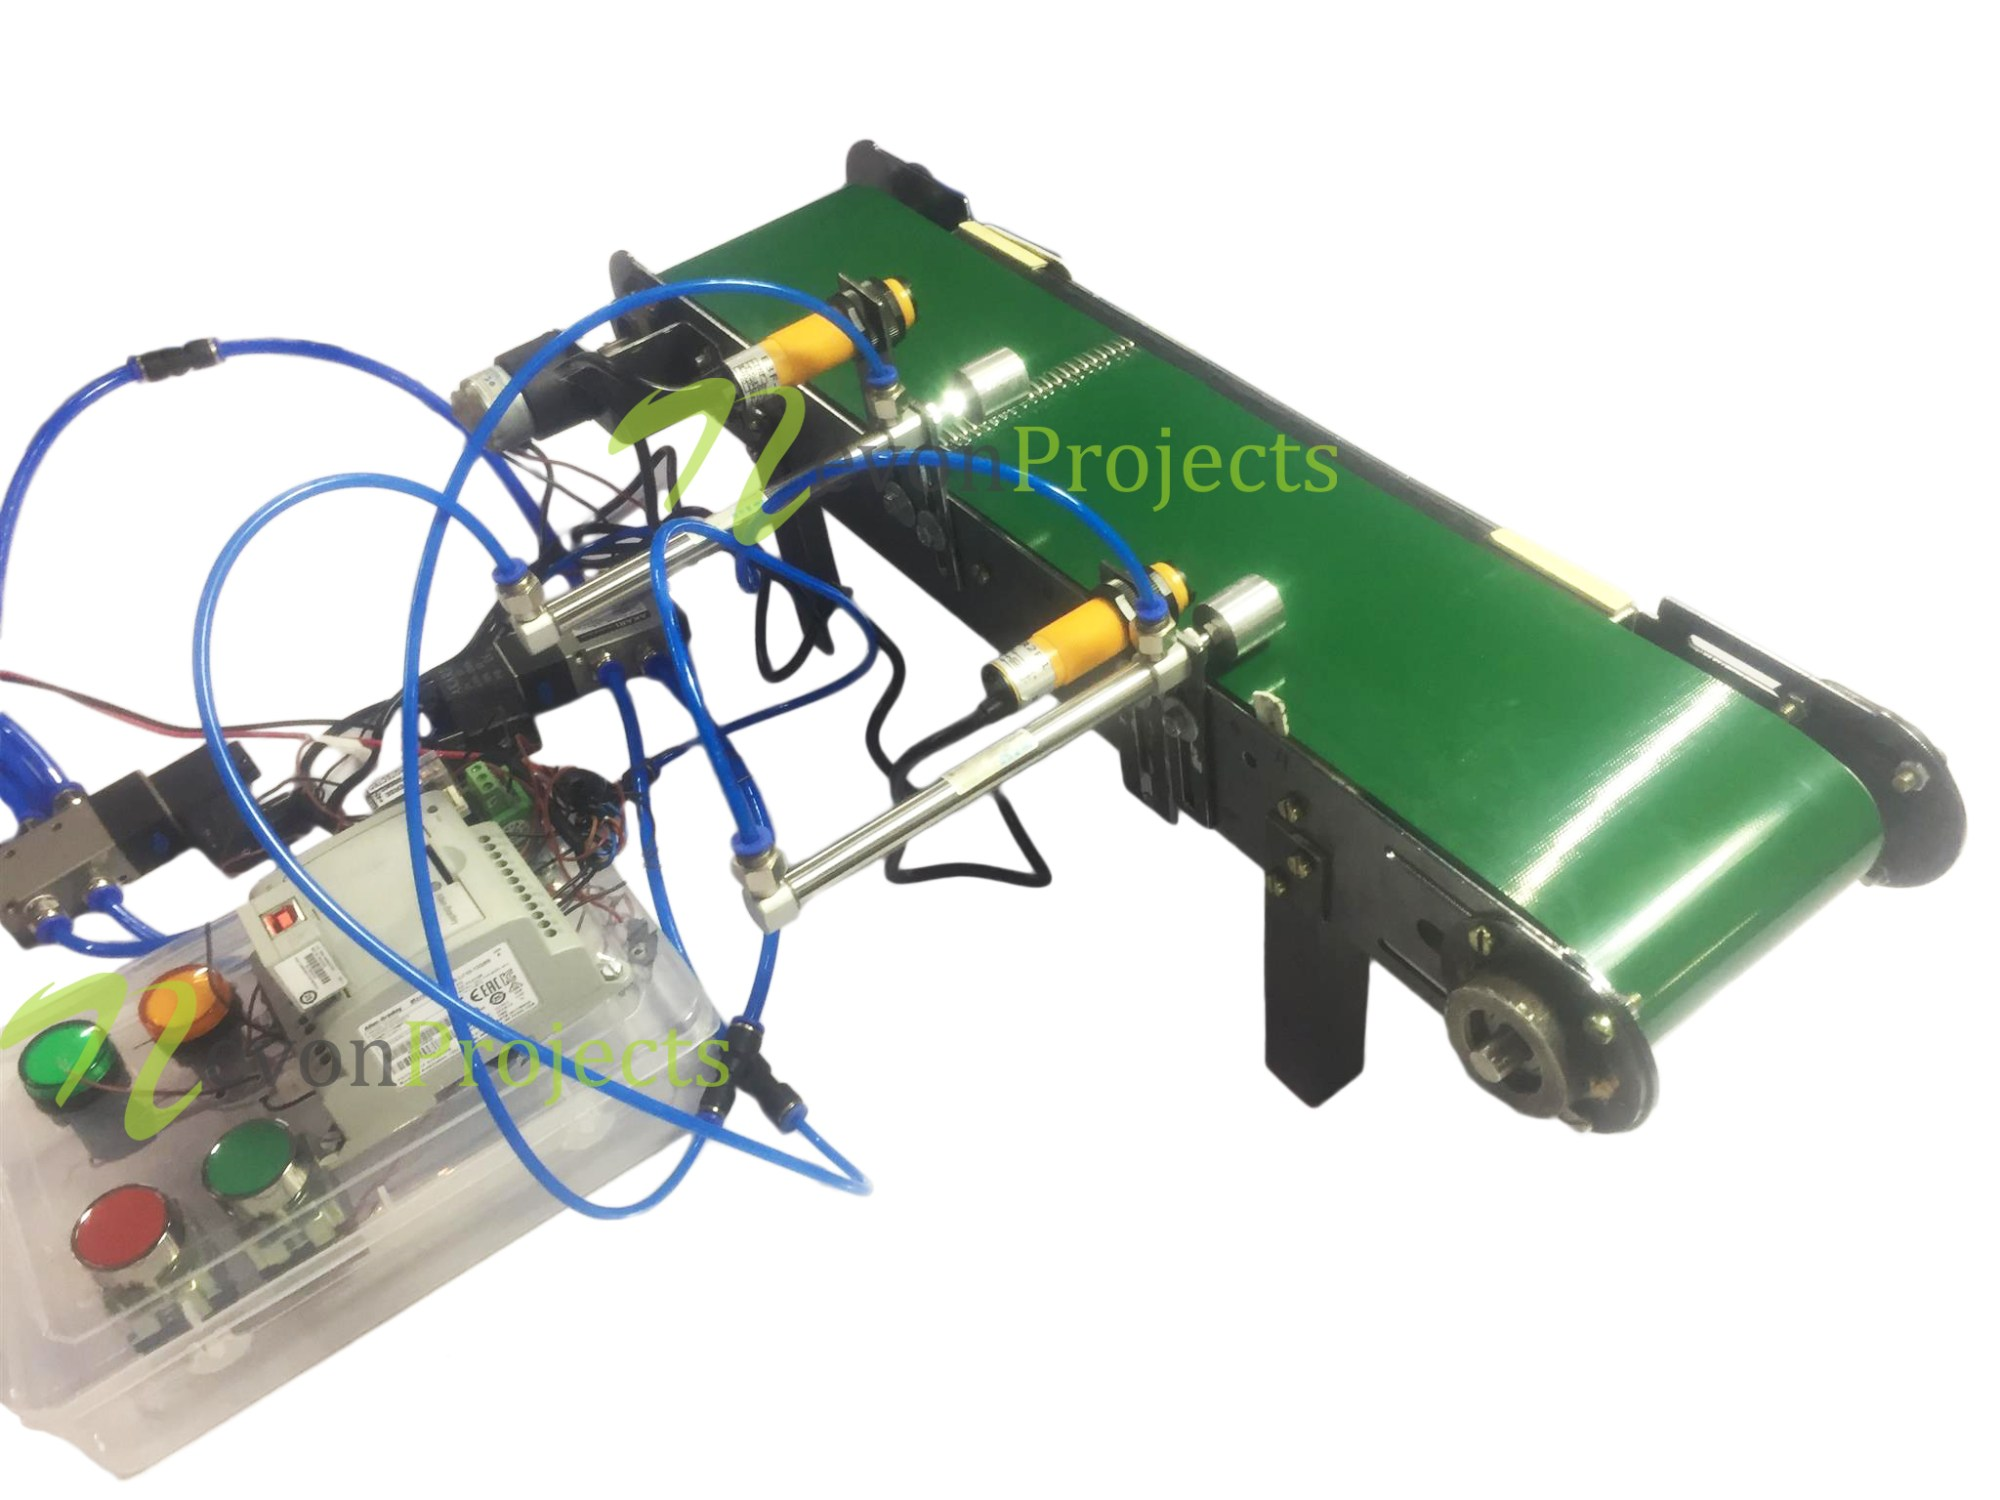 hight resolution of sorting systems are used to bridge between production and packaging machinery sorting systems are used to sort items based on various criteria so that they